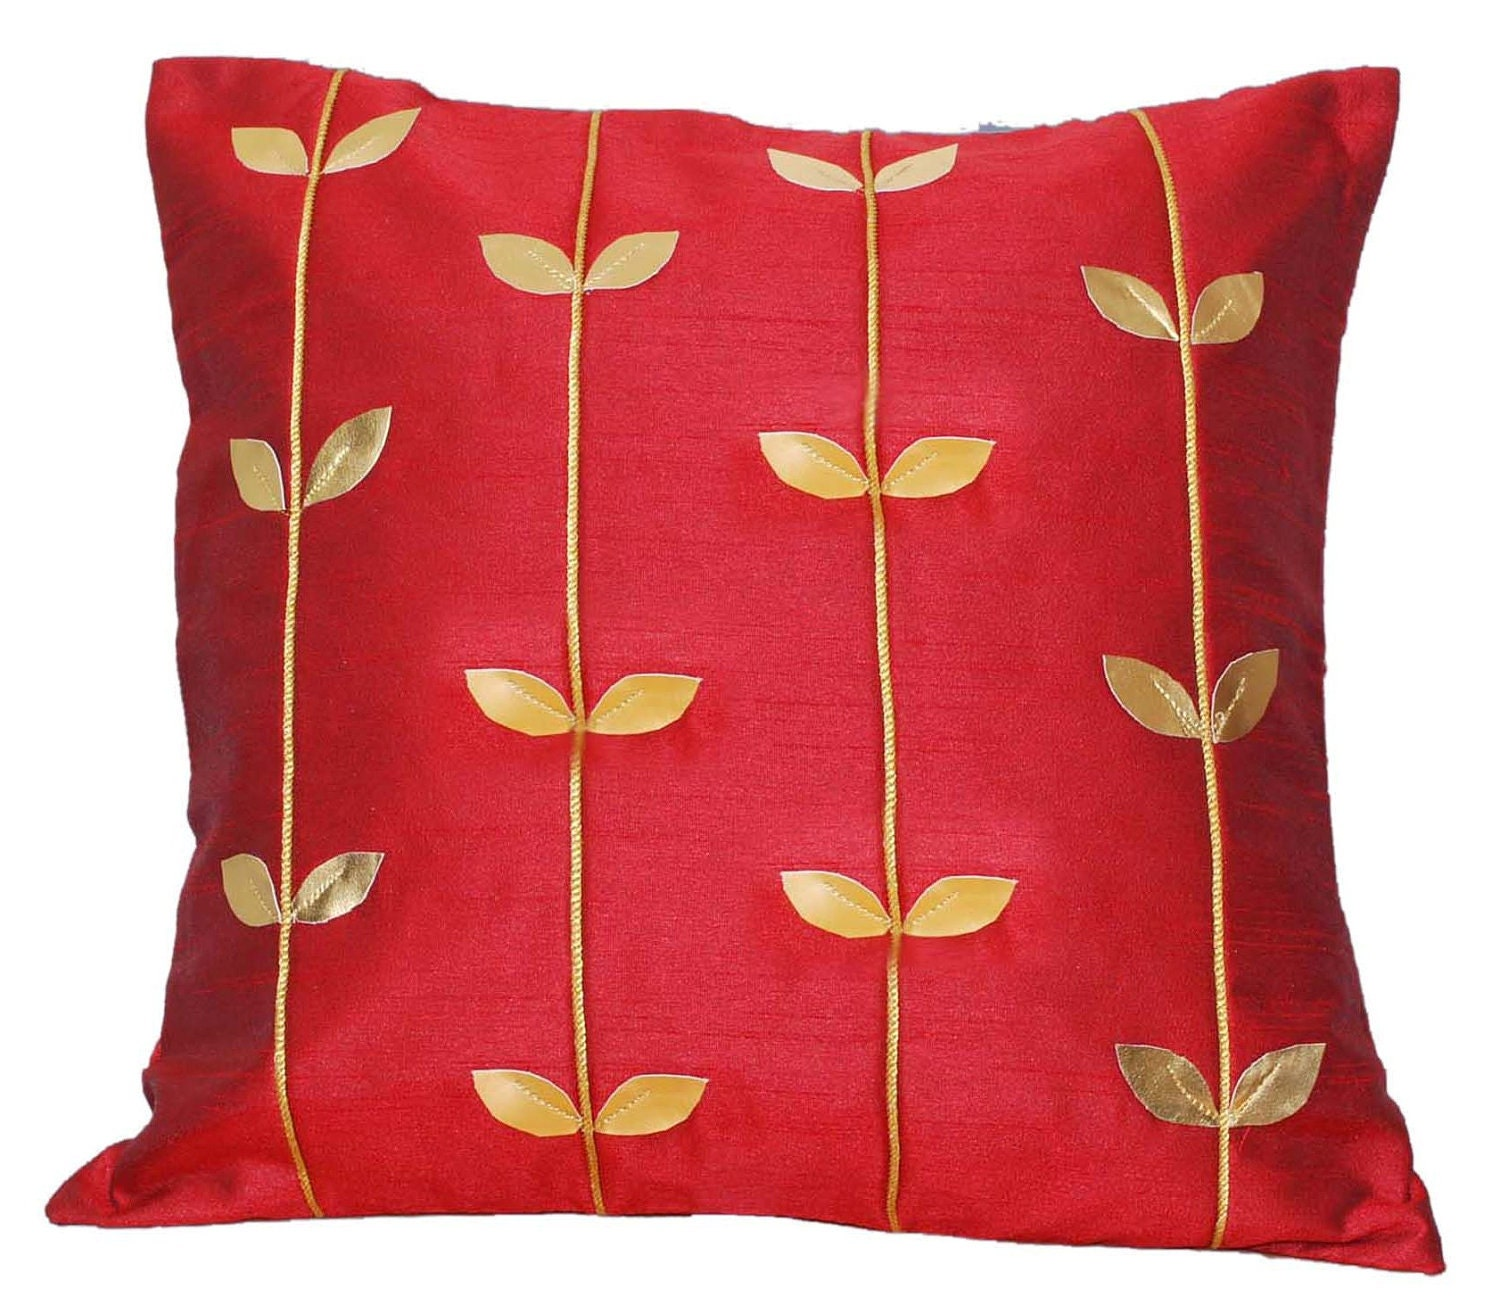 Red Gold Decorative Pillows : Red Throw Pillow Gold Throw Pillow Decorative by TheHomeCorner